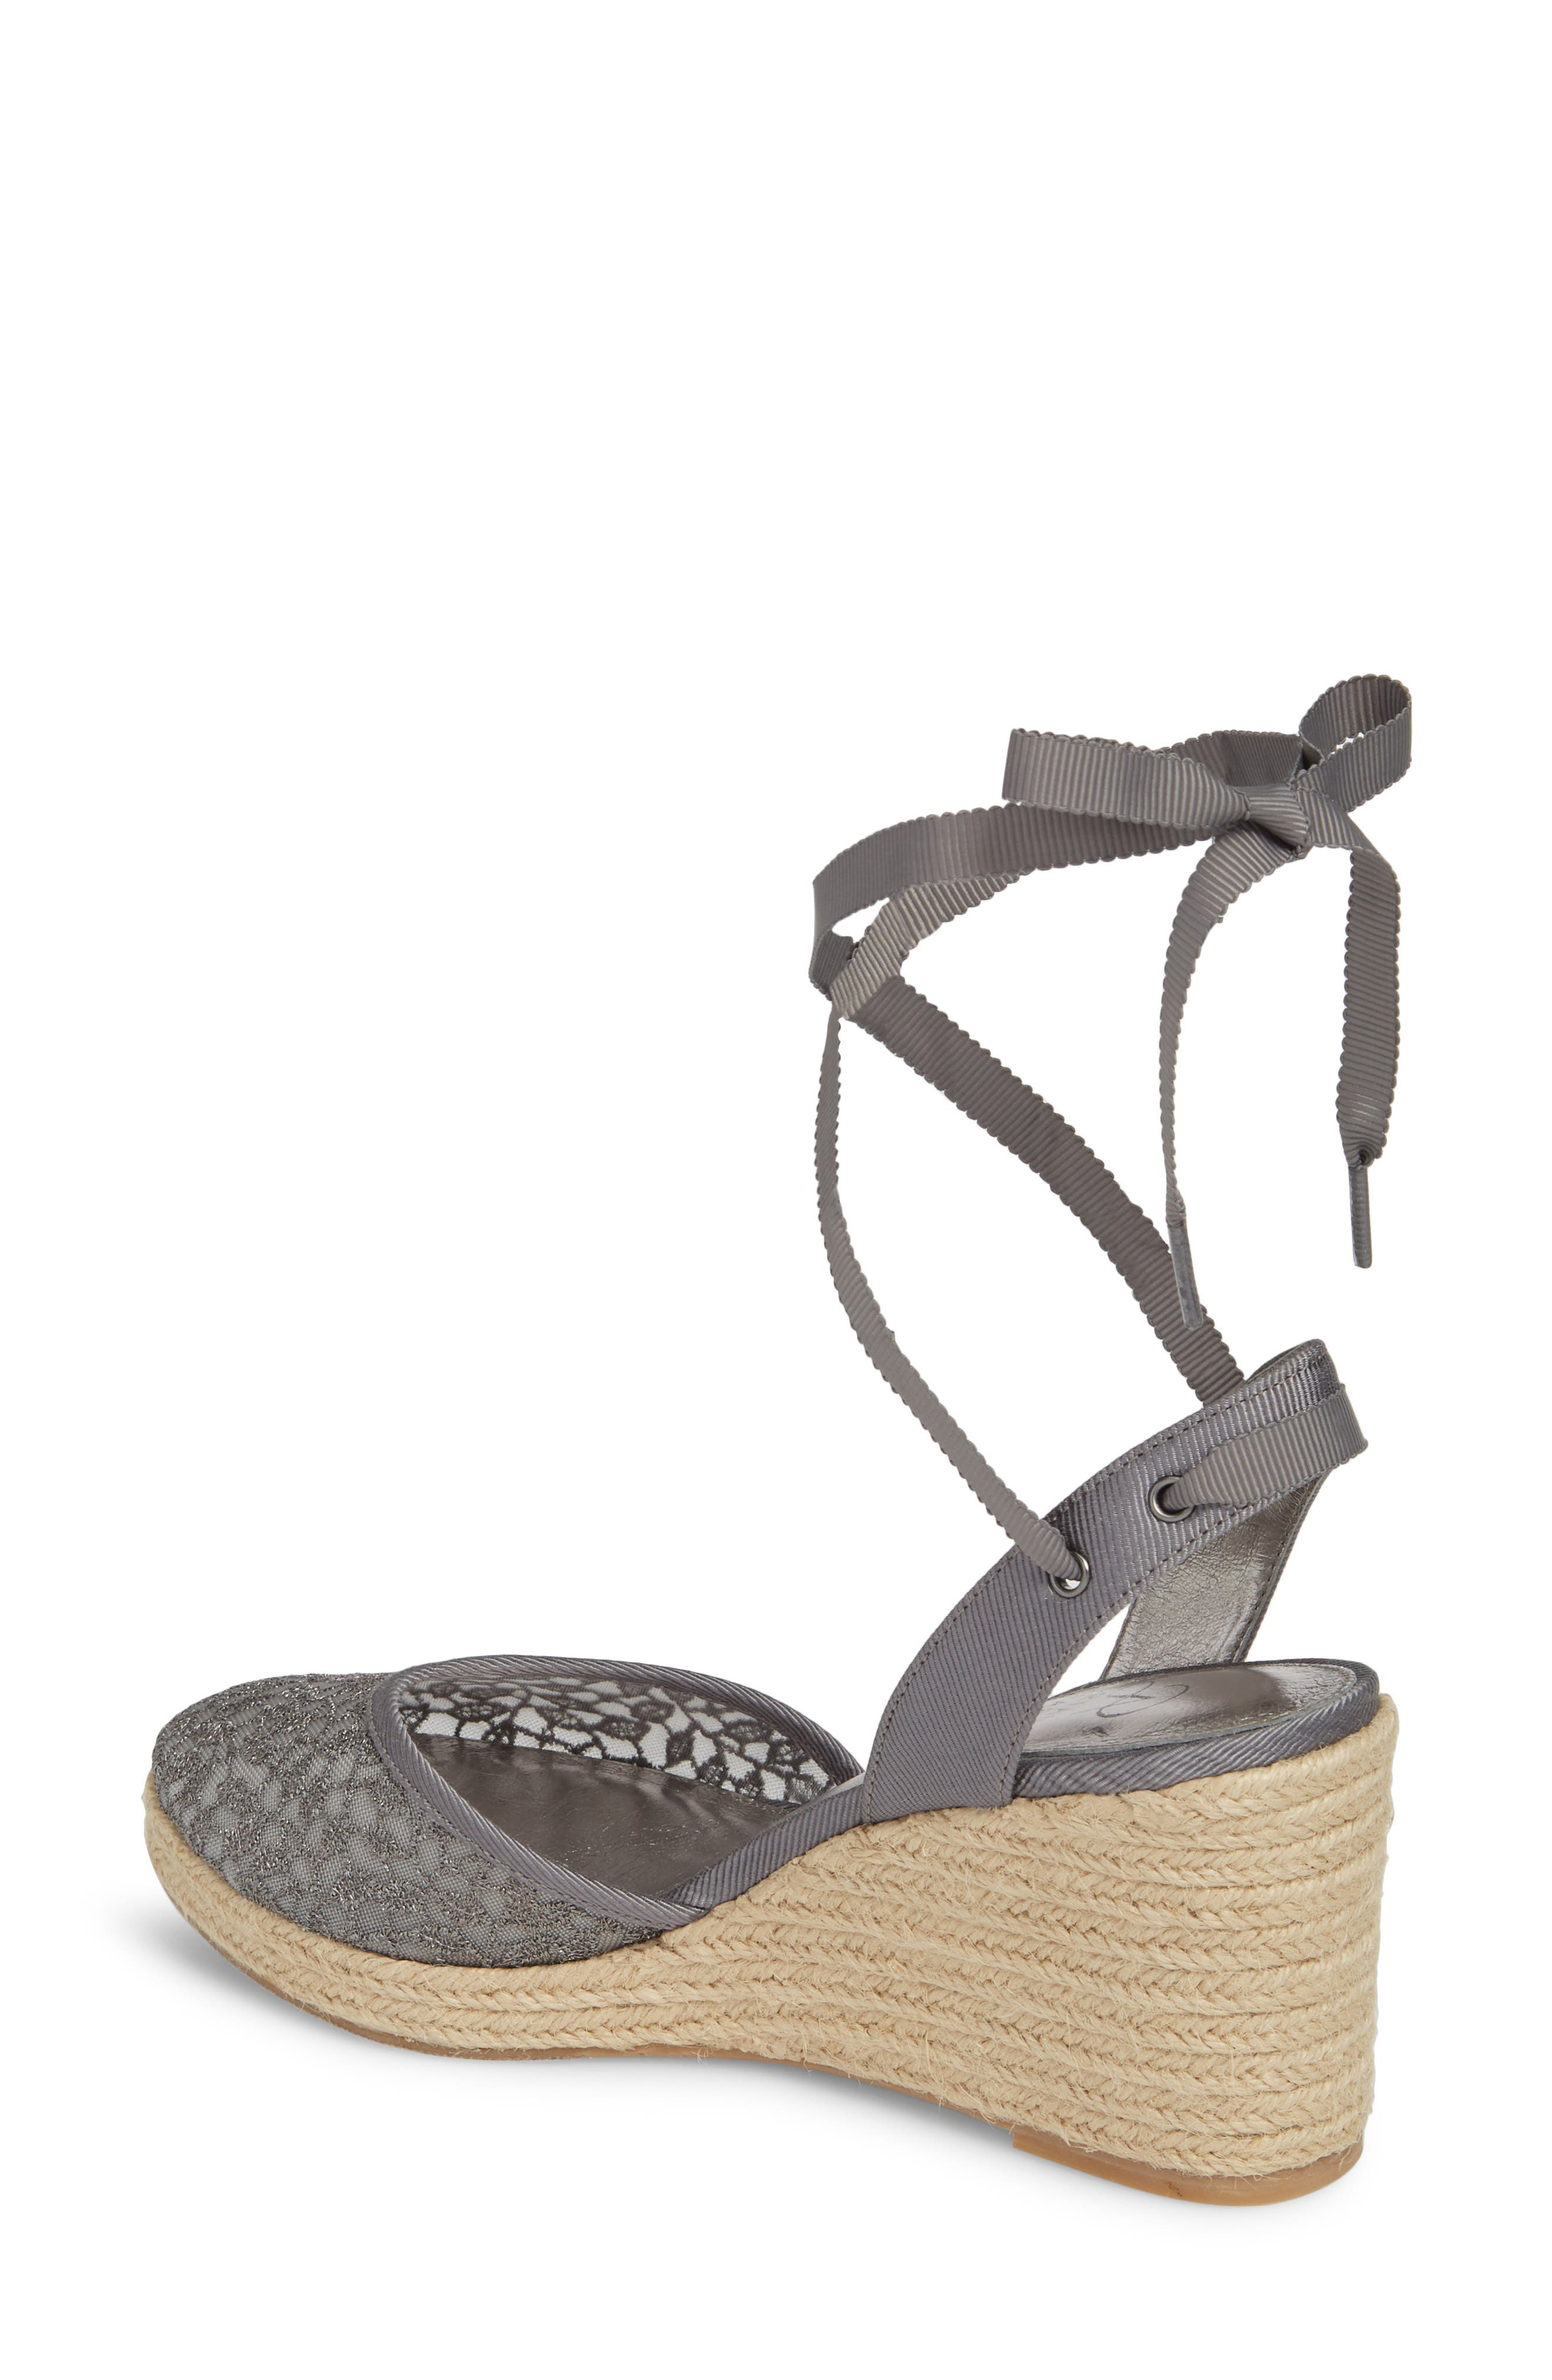 451fd93547e Adrianna Papell Wedges for Women